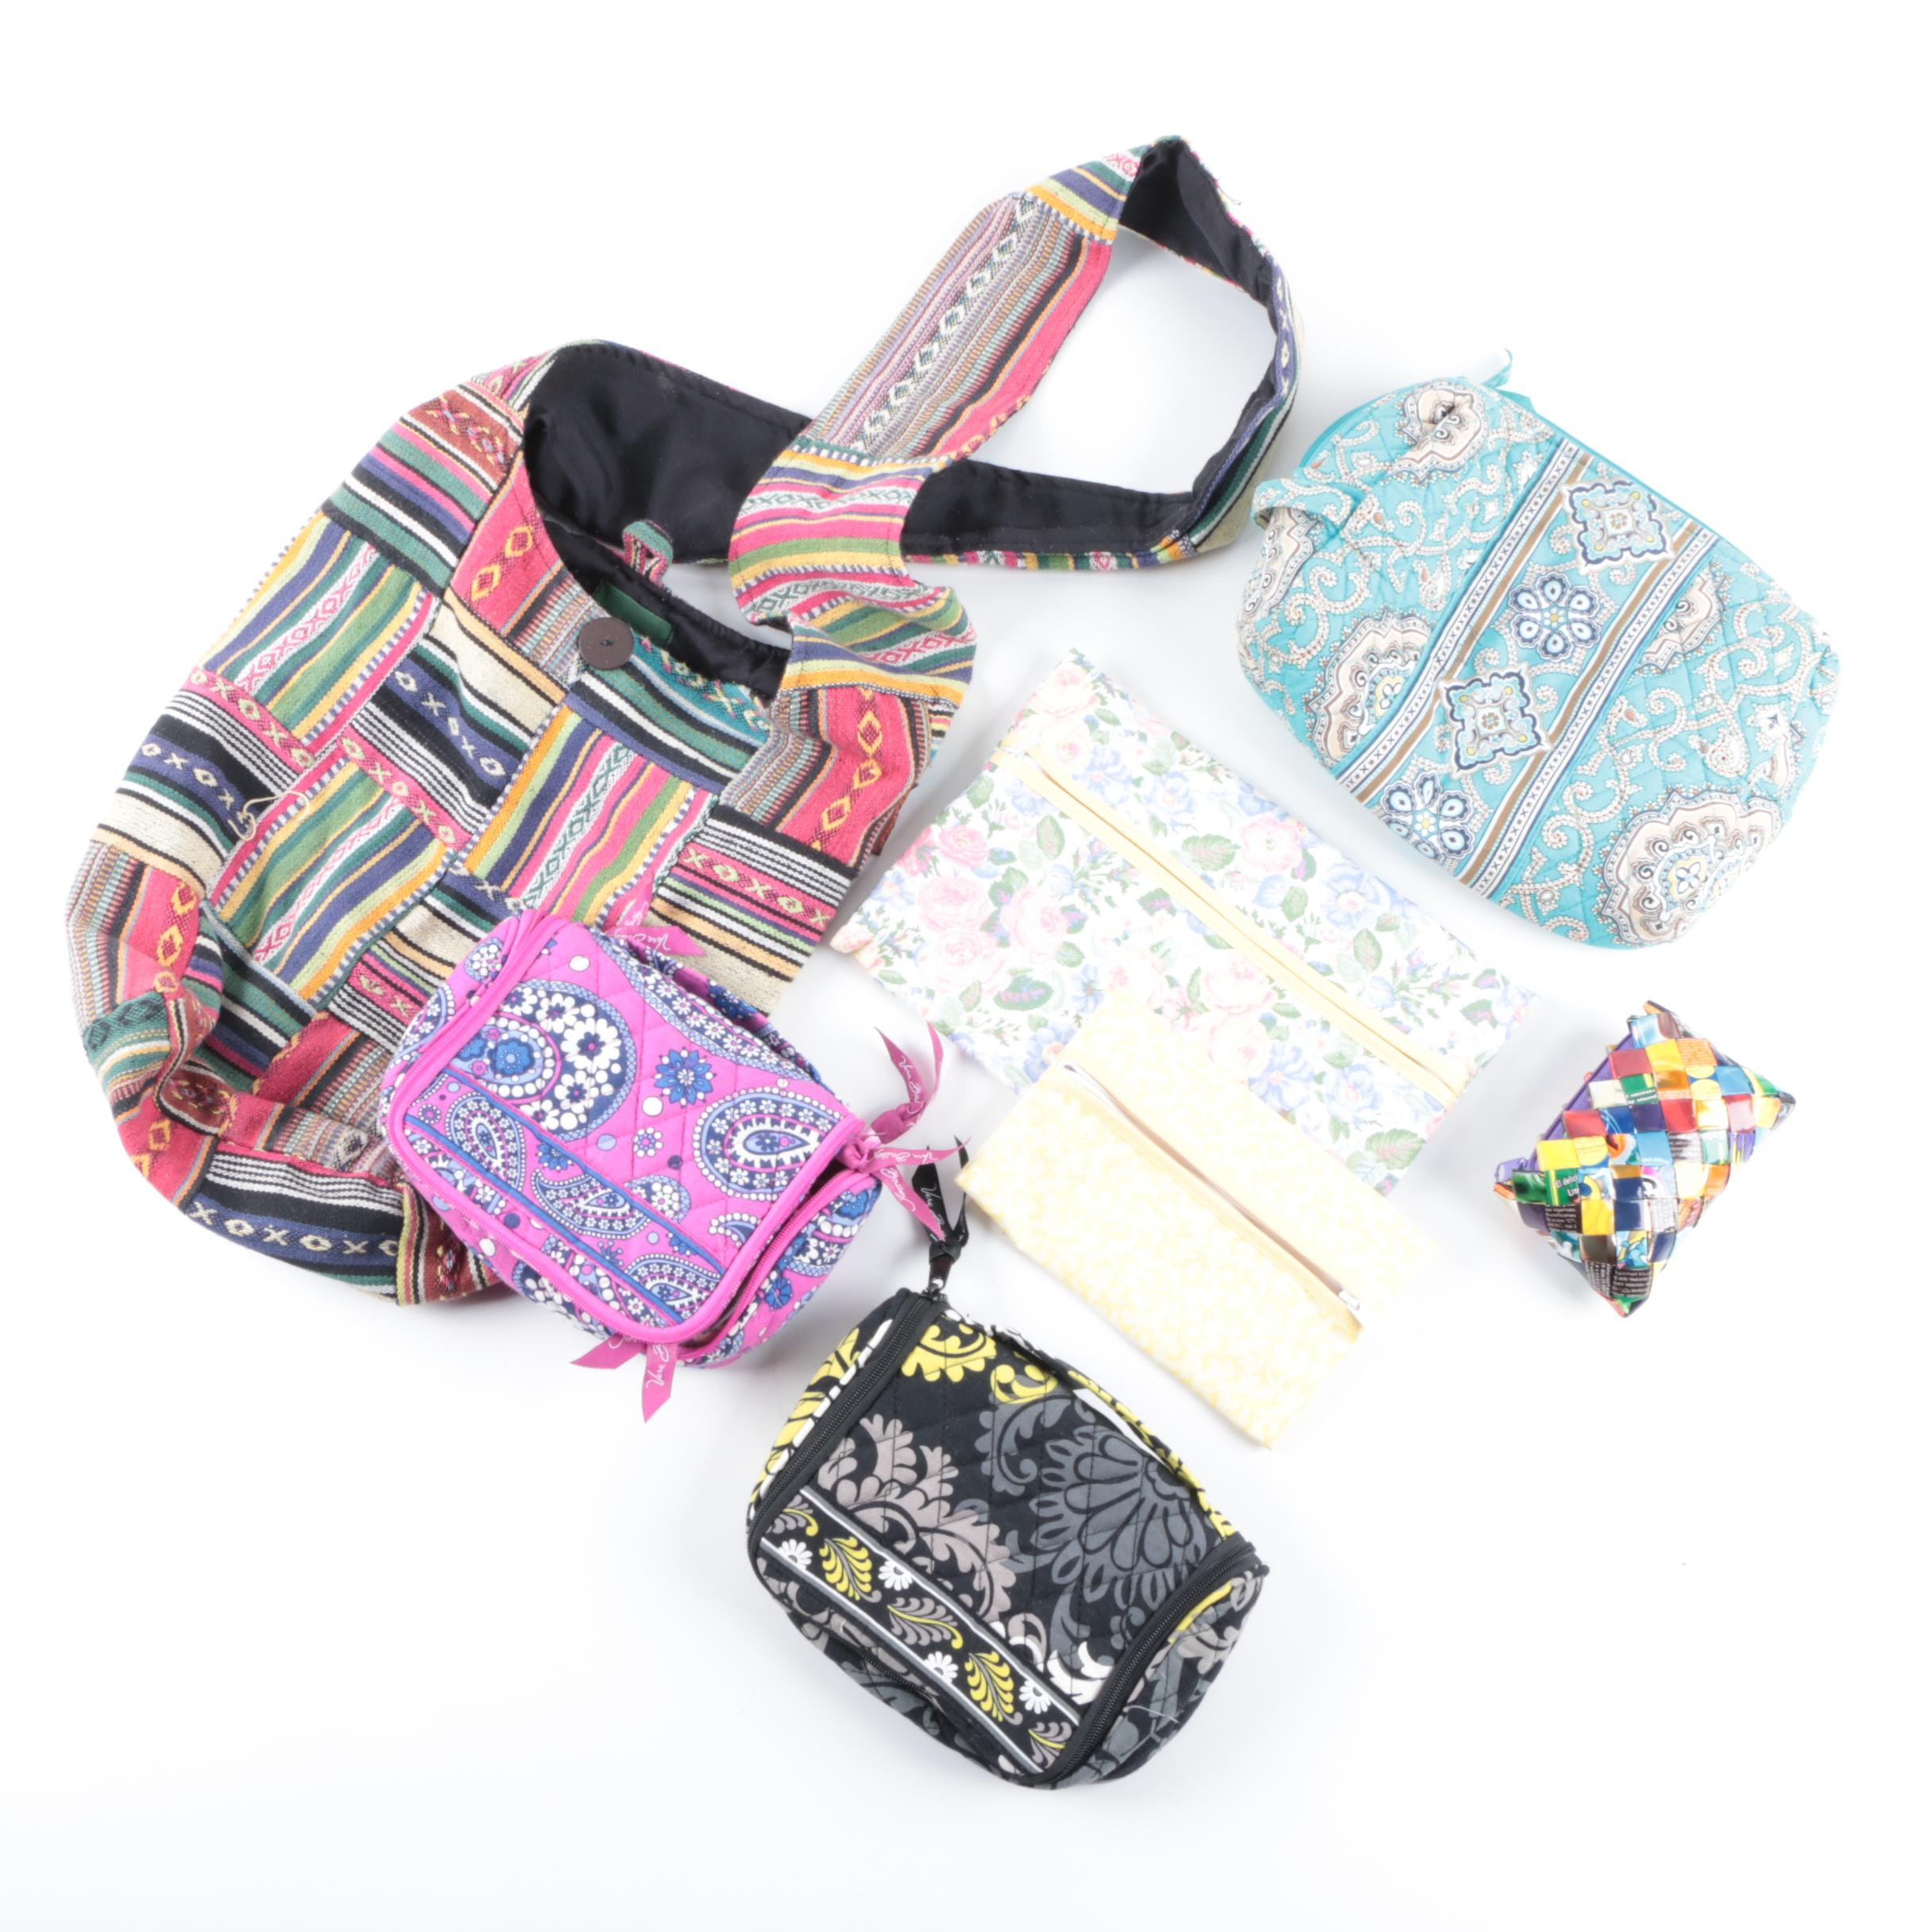 Cloth and Quilted Bags Including Kathmandu and Vera Bradley